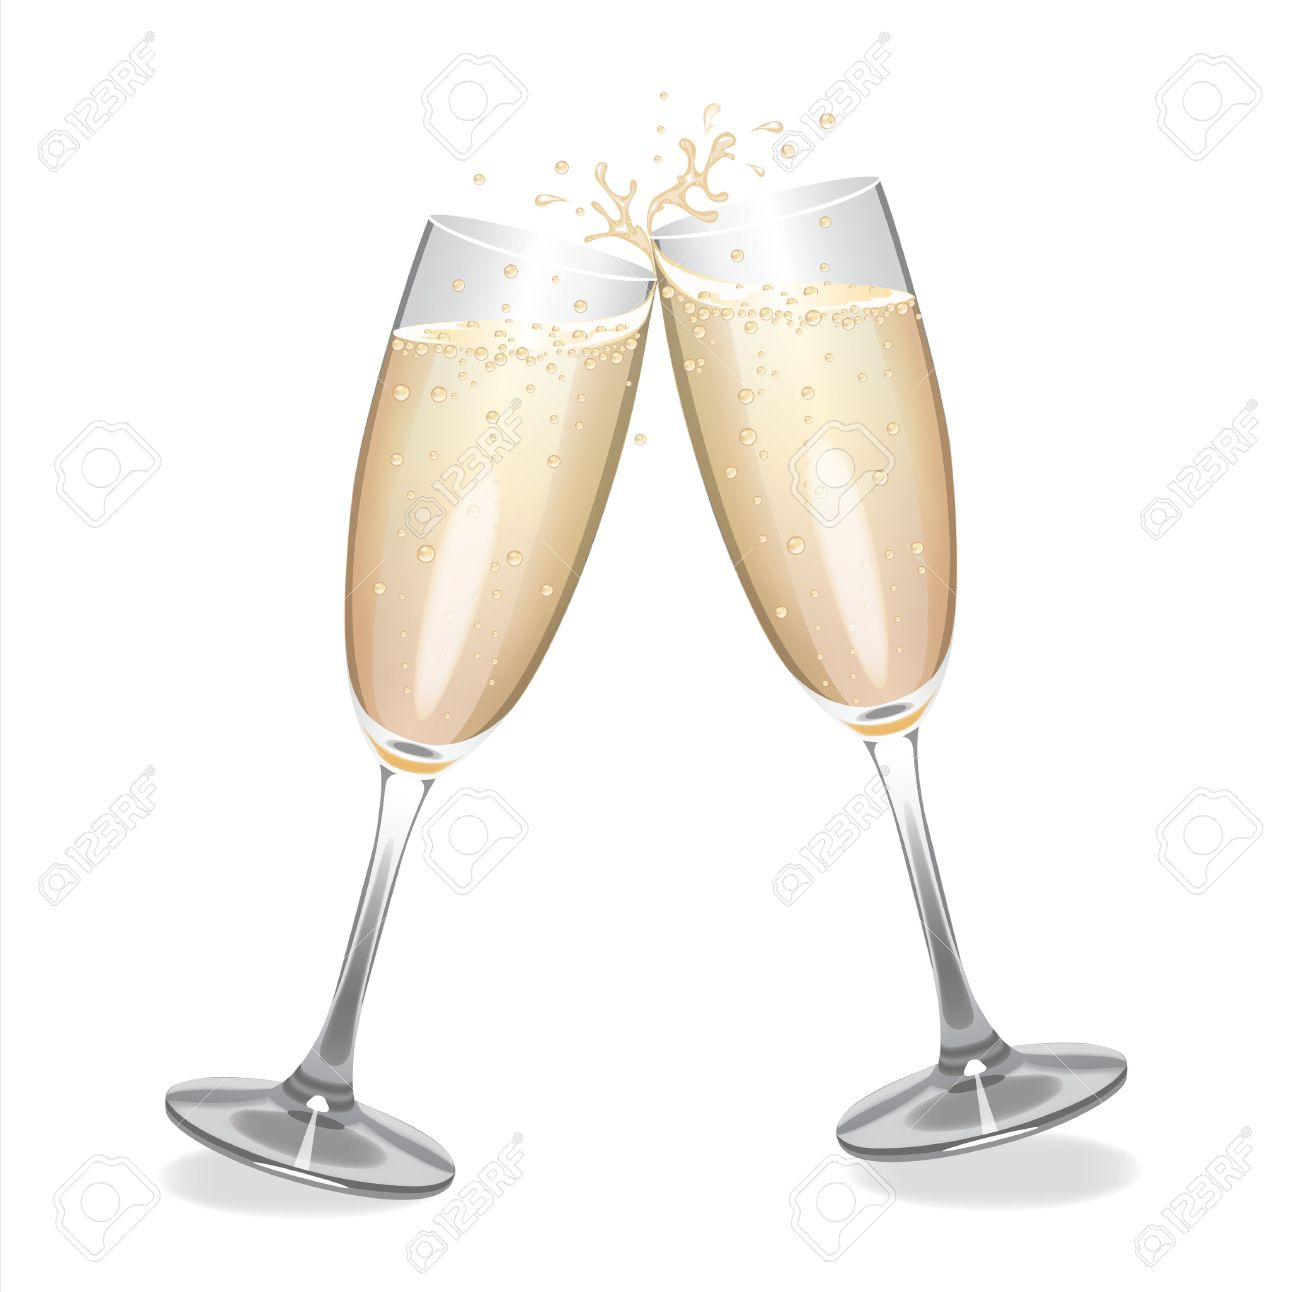 Champagne glasses clinking together. - 60616707